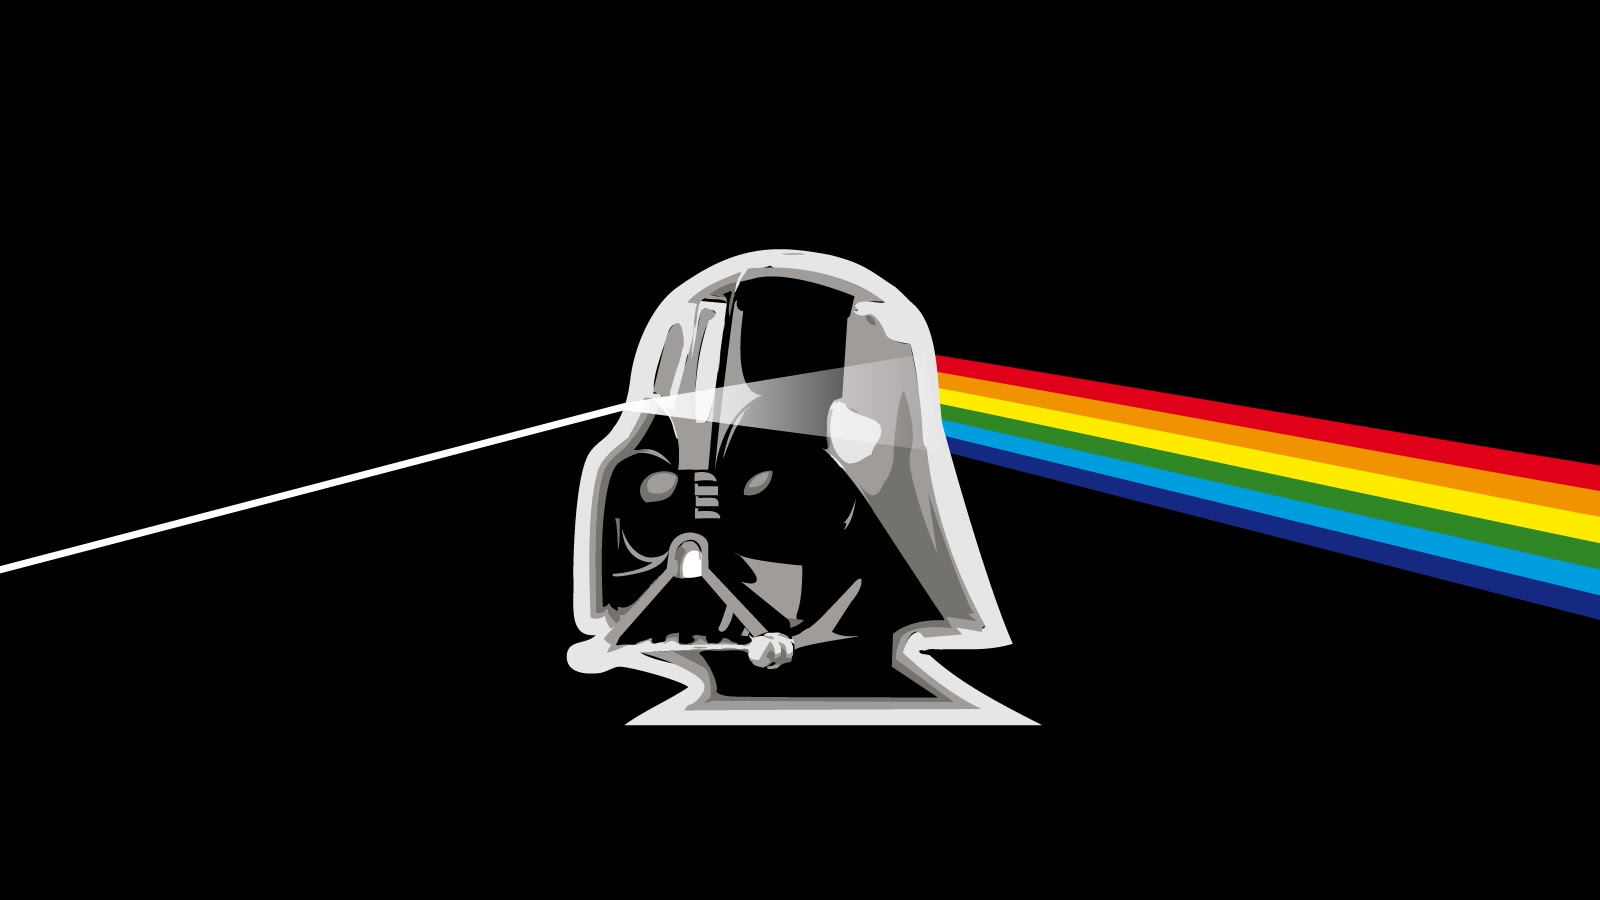 Download Wallpapers Download 1920x1080 Pink Floyd Darth Vader The